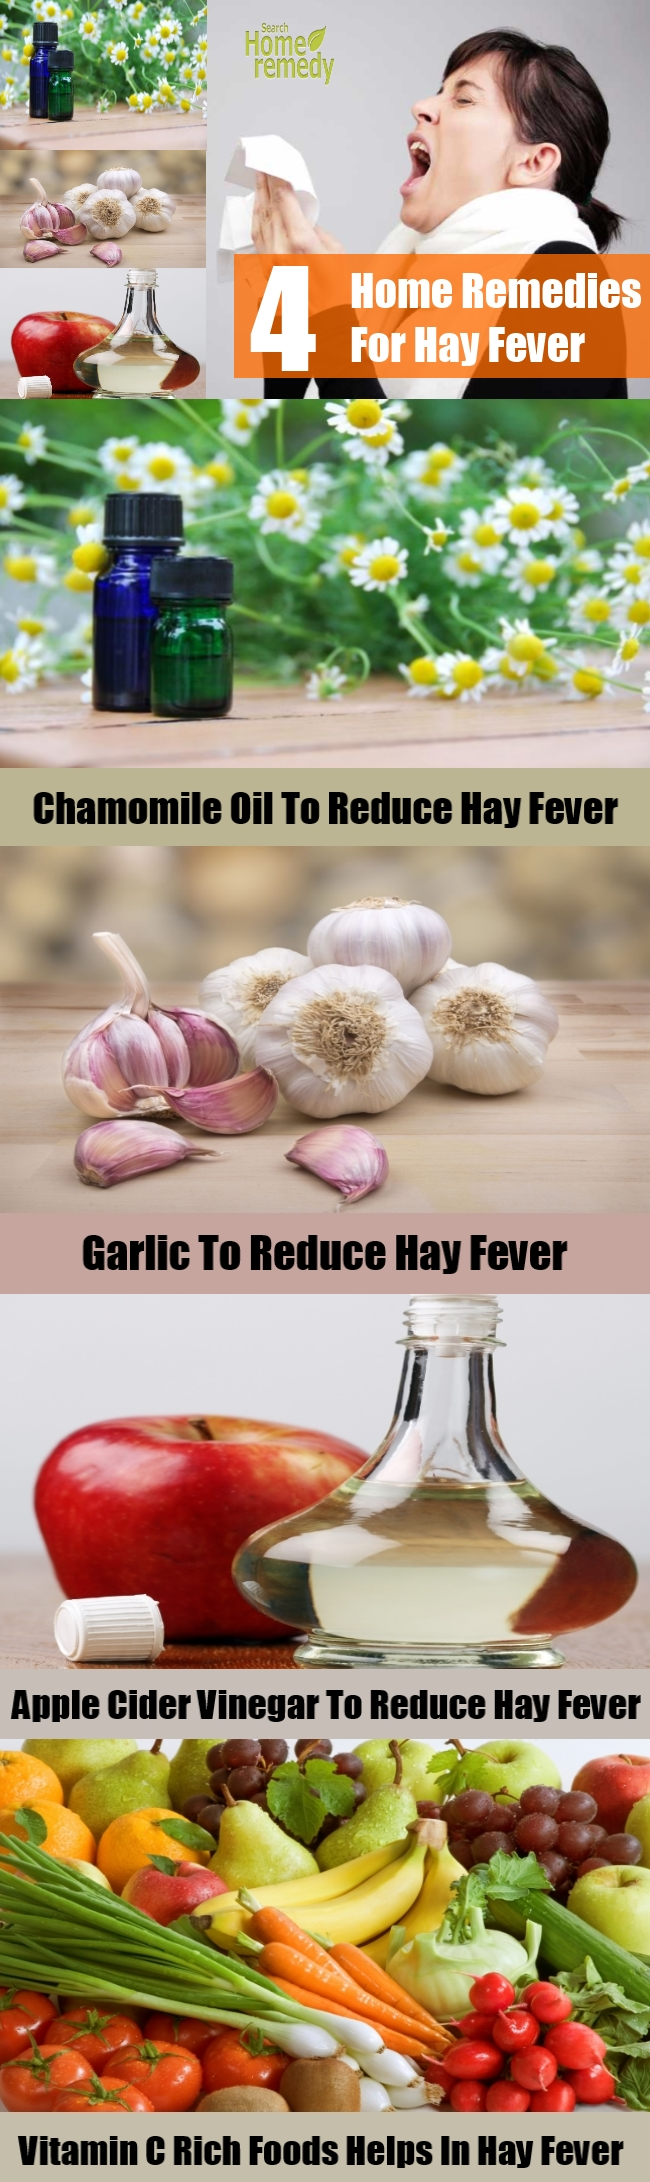 4 Home Remedies For Hay Fever